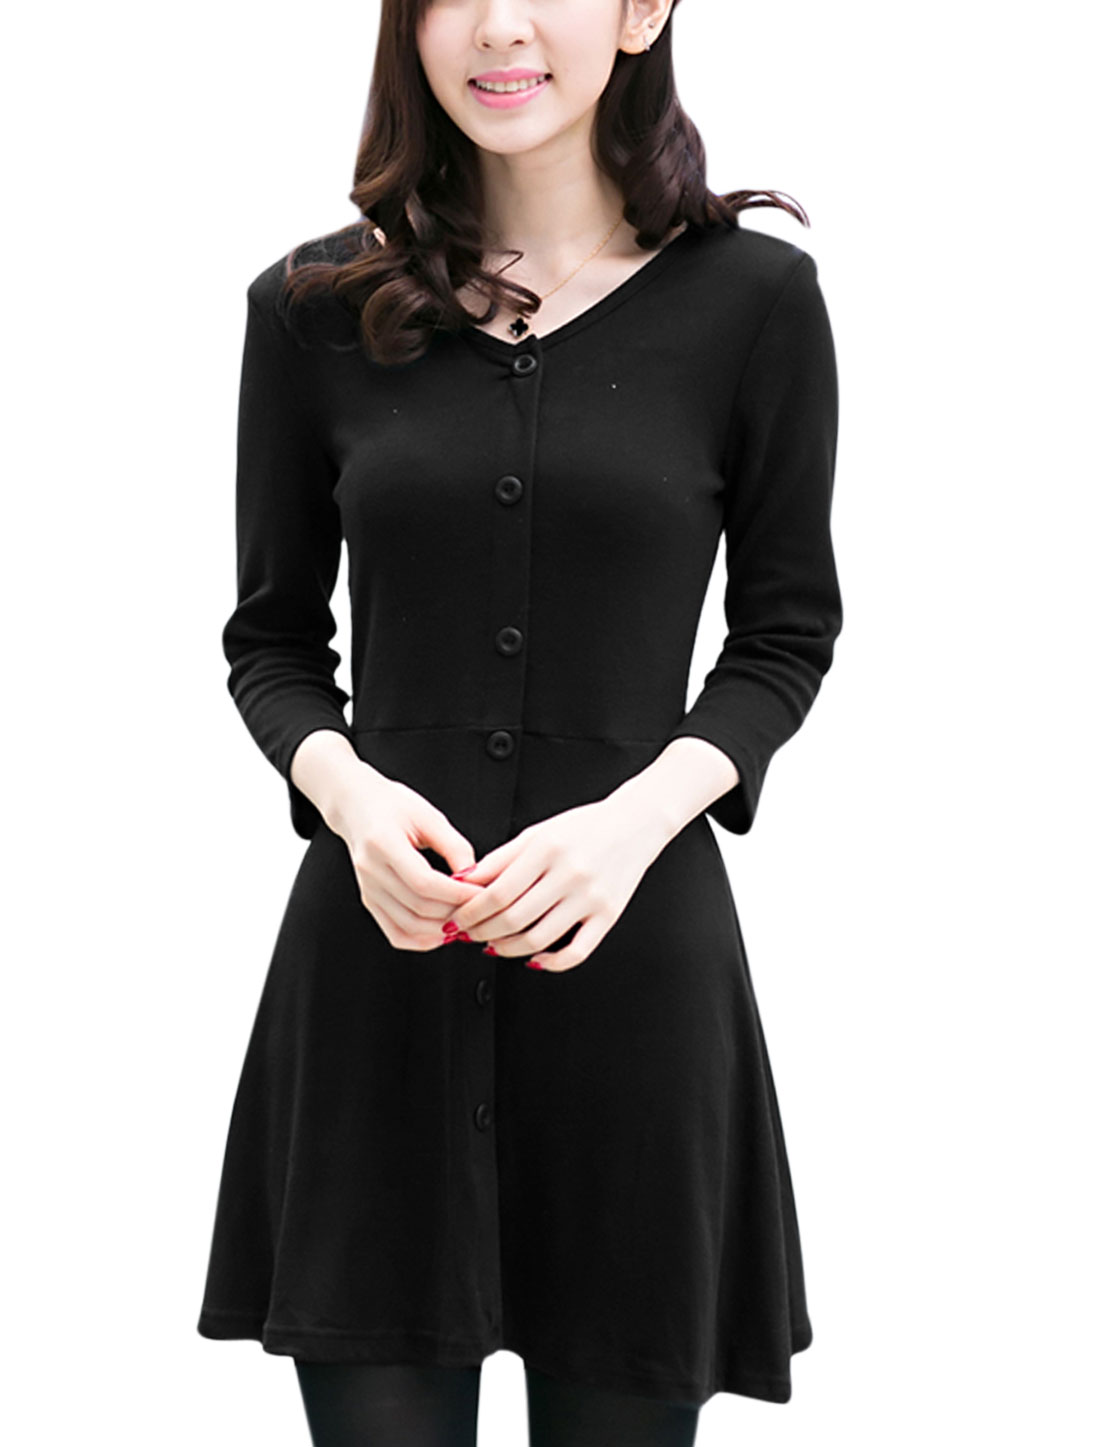 V Neck Button Decor Leisure A-Line Dress for Women Black M